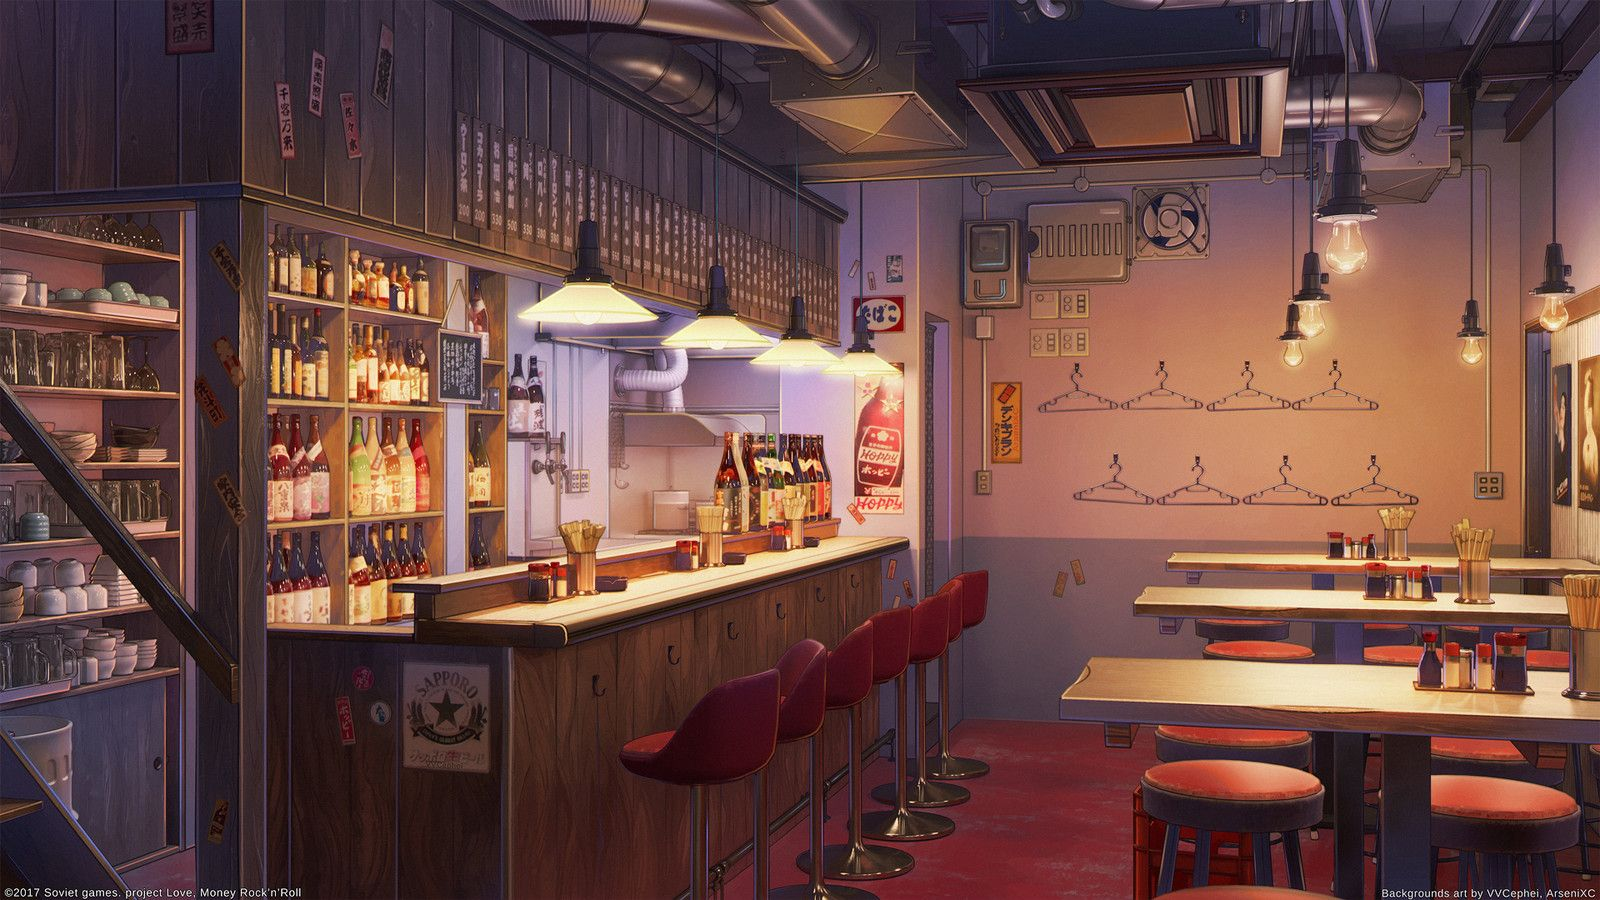 Pin By Ken Tai On Inspiration In 2019 Bar Anime Scenery